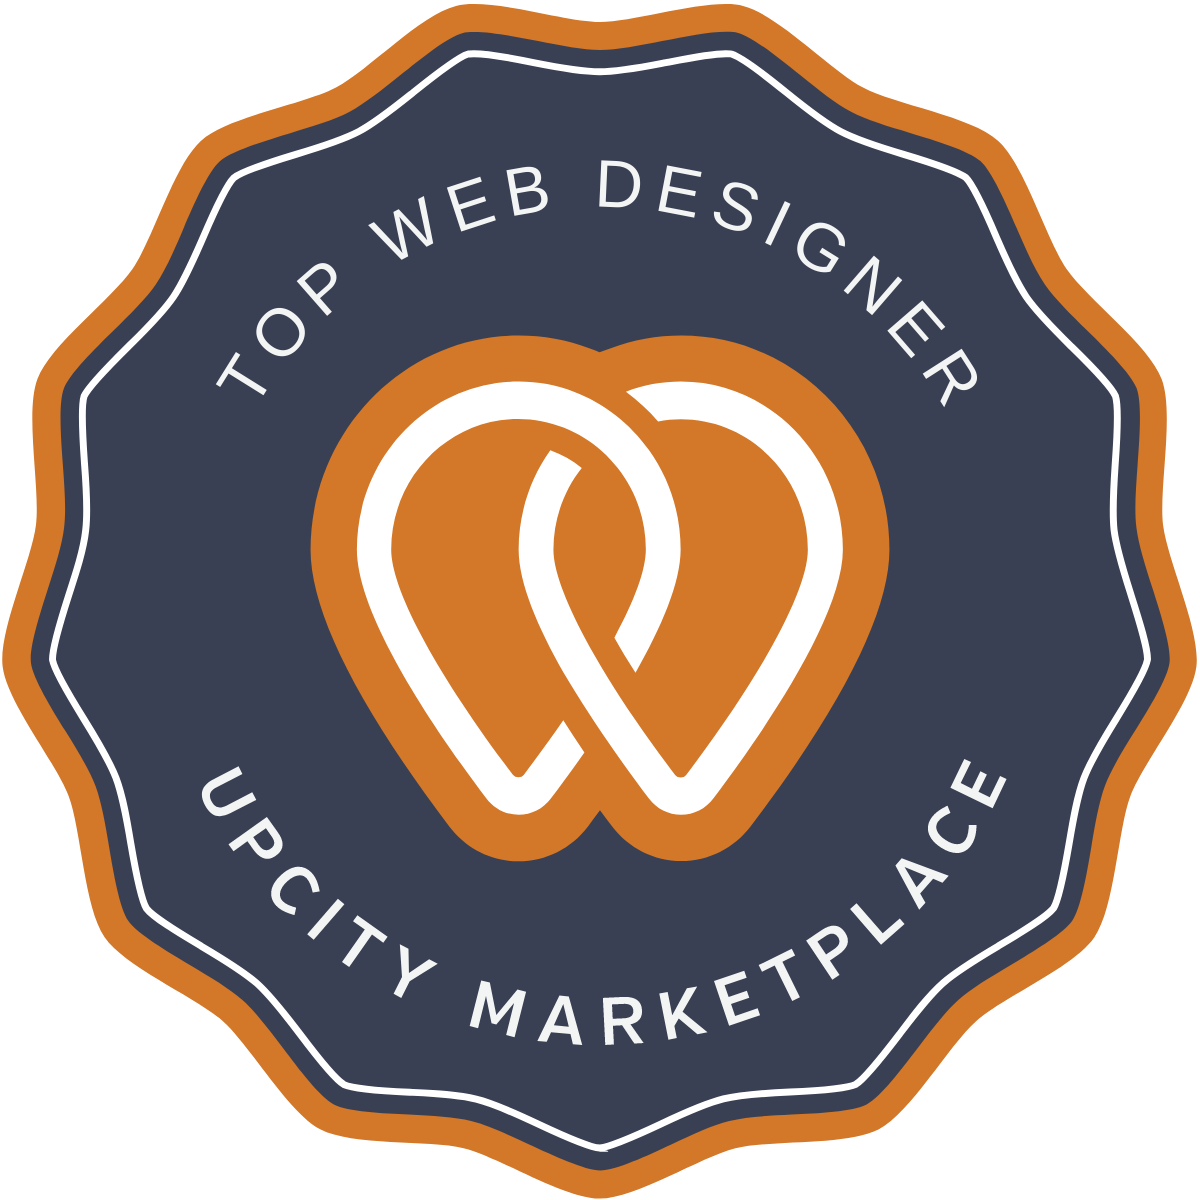 Top Boise Web Designer, Certified by Upcity